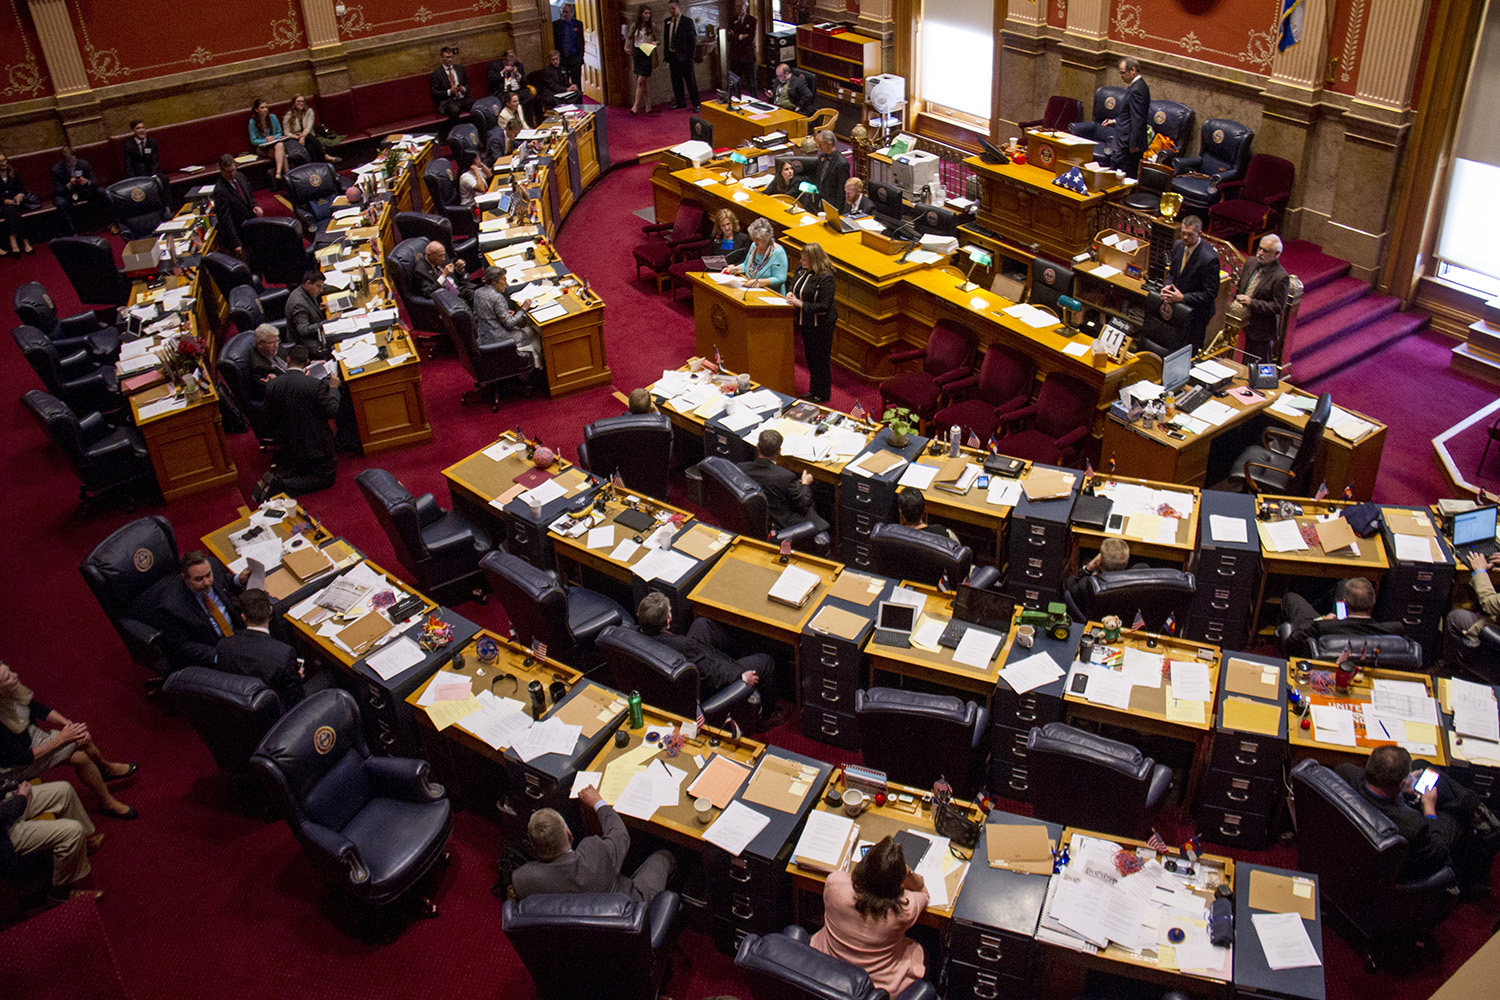 Scenes from the seat of government on the last day of the state legislative session in 2016. (Kevin J. Beaty/Denverite)